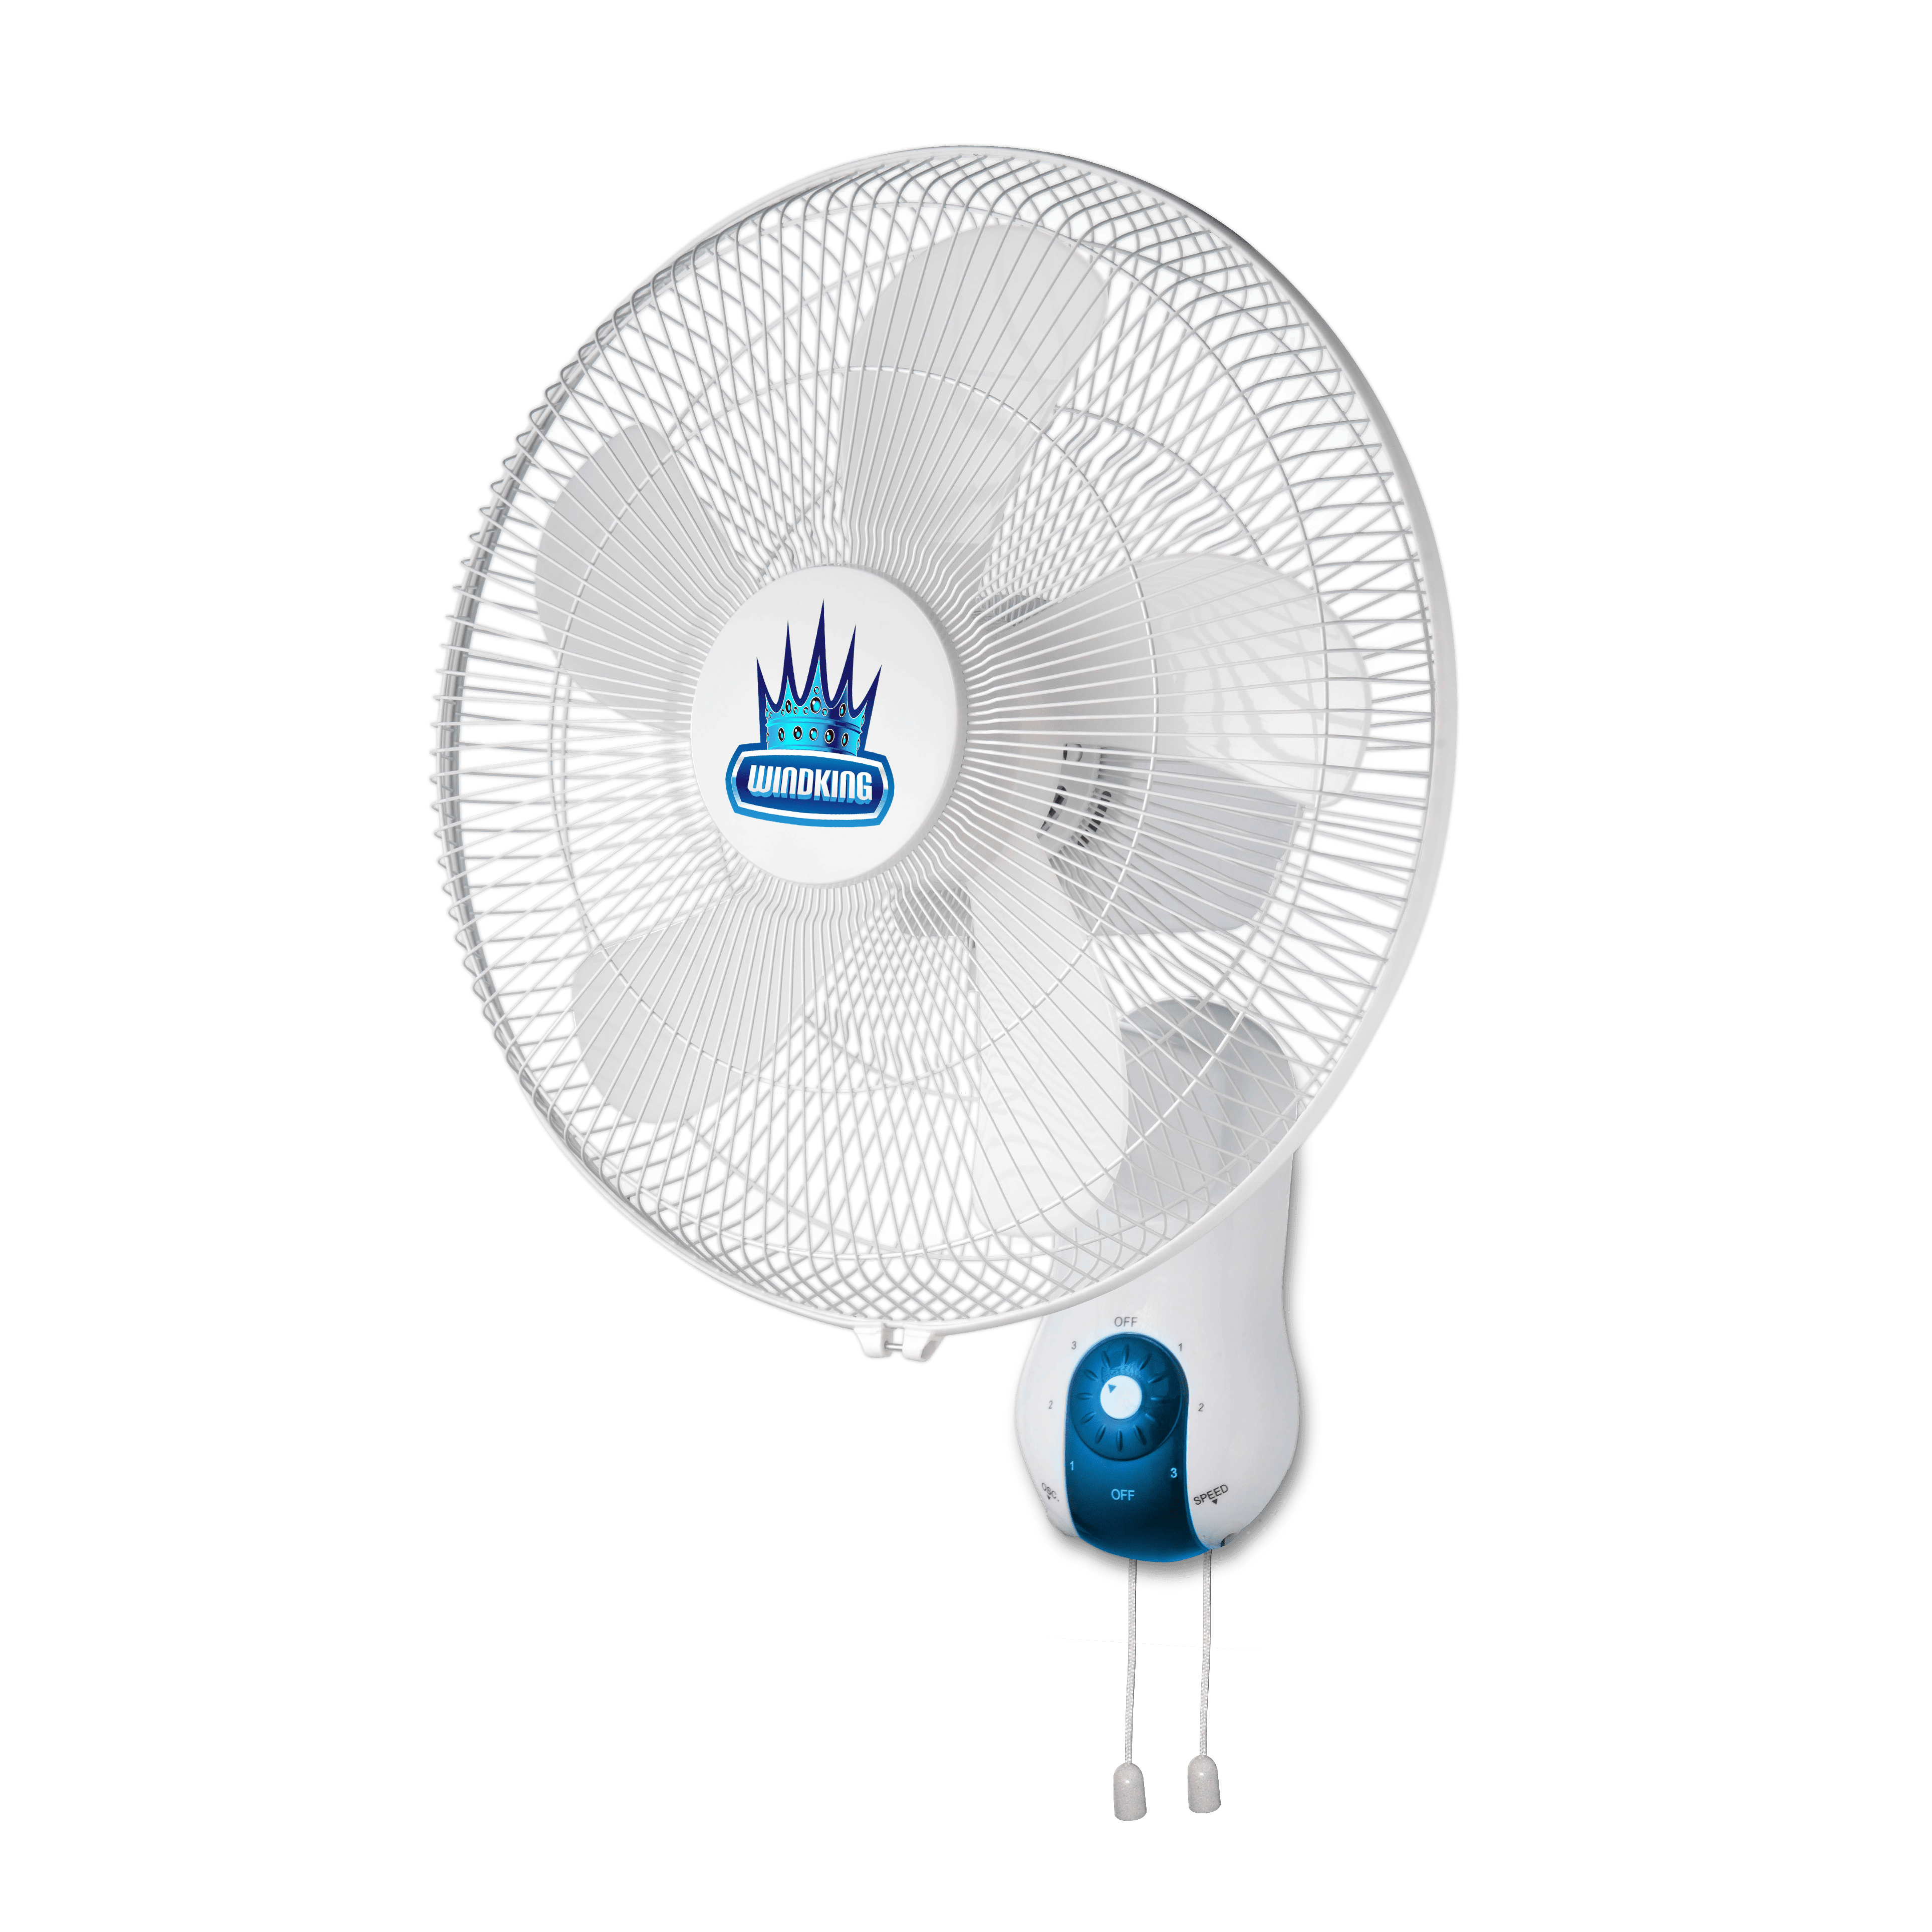 new windking fan3